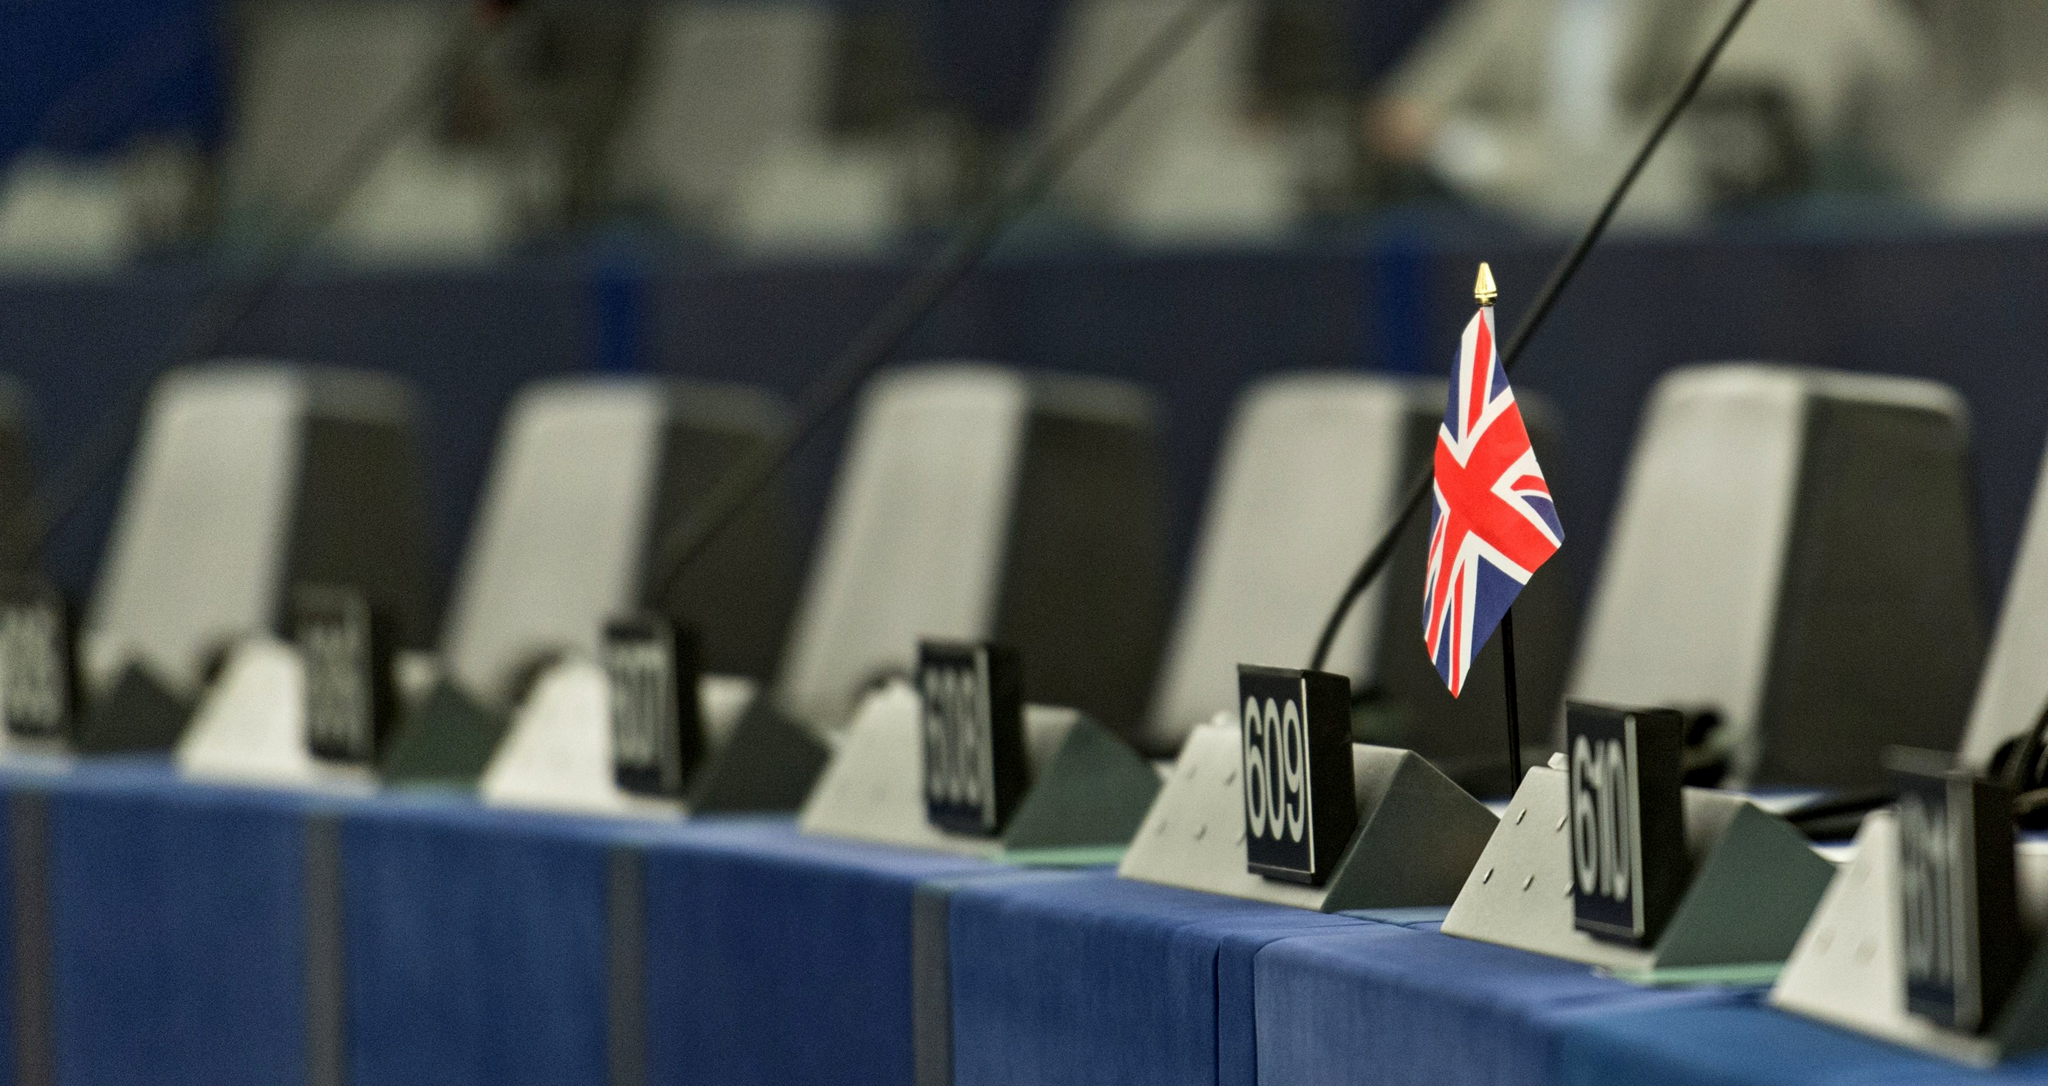 epa05408248 A single British flag sits on a desk during a debate in the European Parliament in Strasbourg, France, 05 July 2016. The European Parliament met to review the Brexit summit conclusions and the past Dutch EU presidency. All member nations of EU take part in the rotating six-month EU presidency that is currently held by Slovakia.  EPA/PATRICK SEEGER